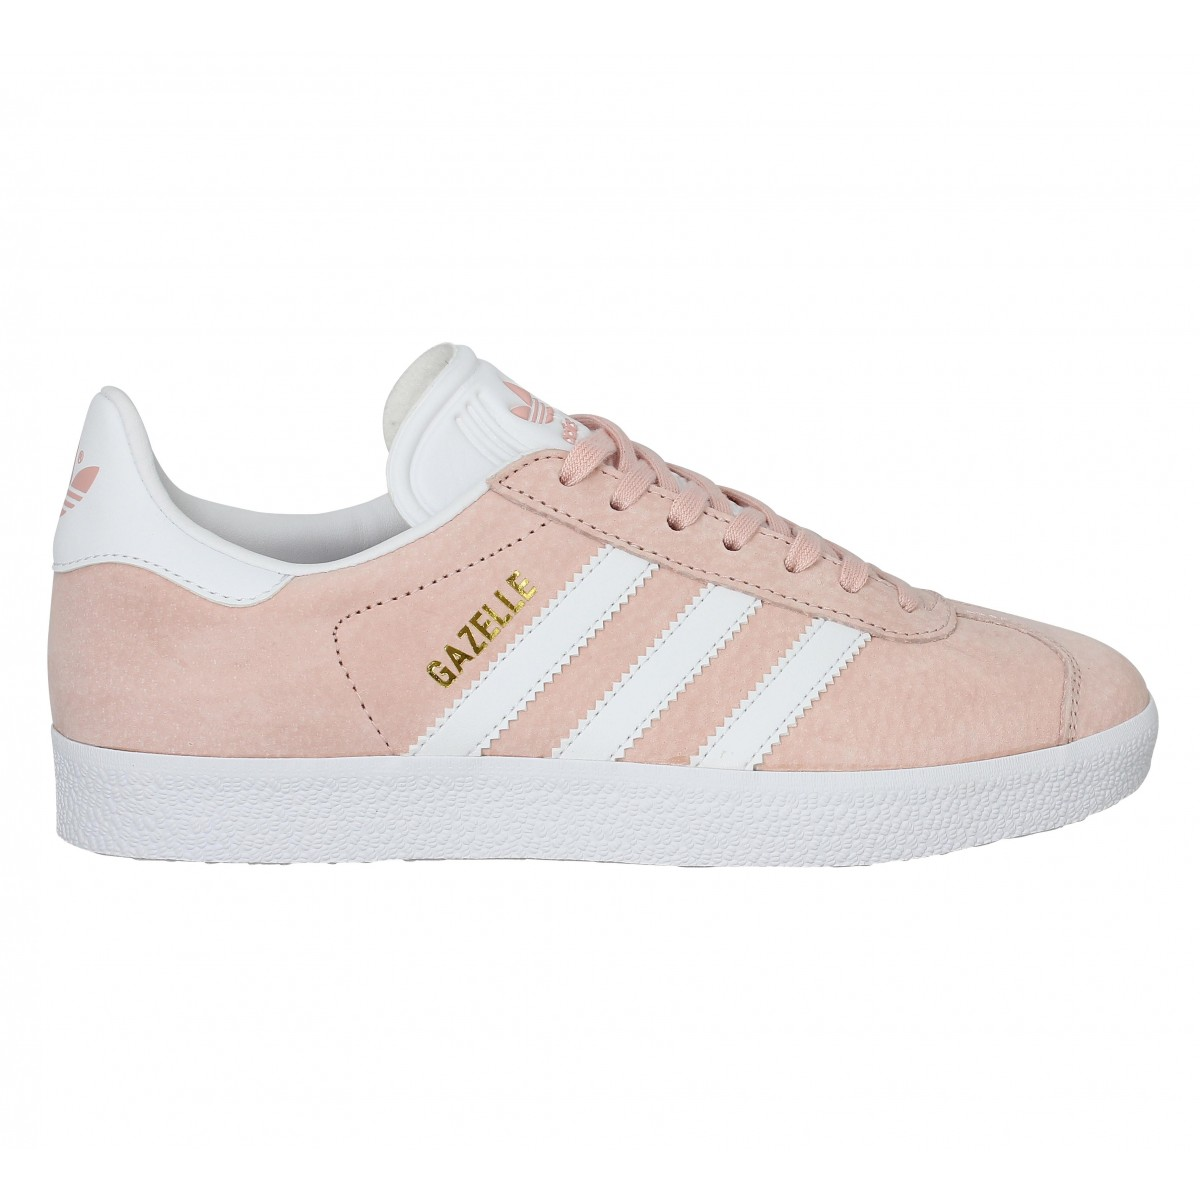 adidas gazelle rose vapeur femme fanny chaussures. Black Bedroom Furniture Sets. Home Design Ideas